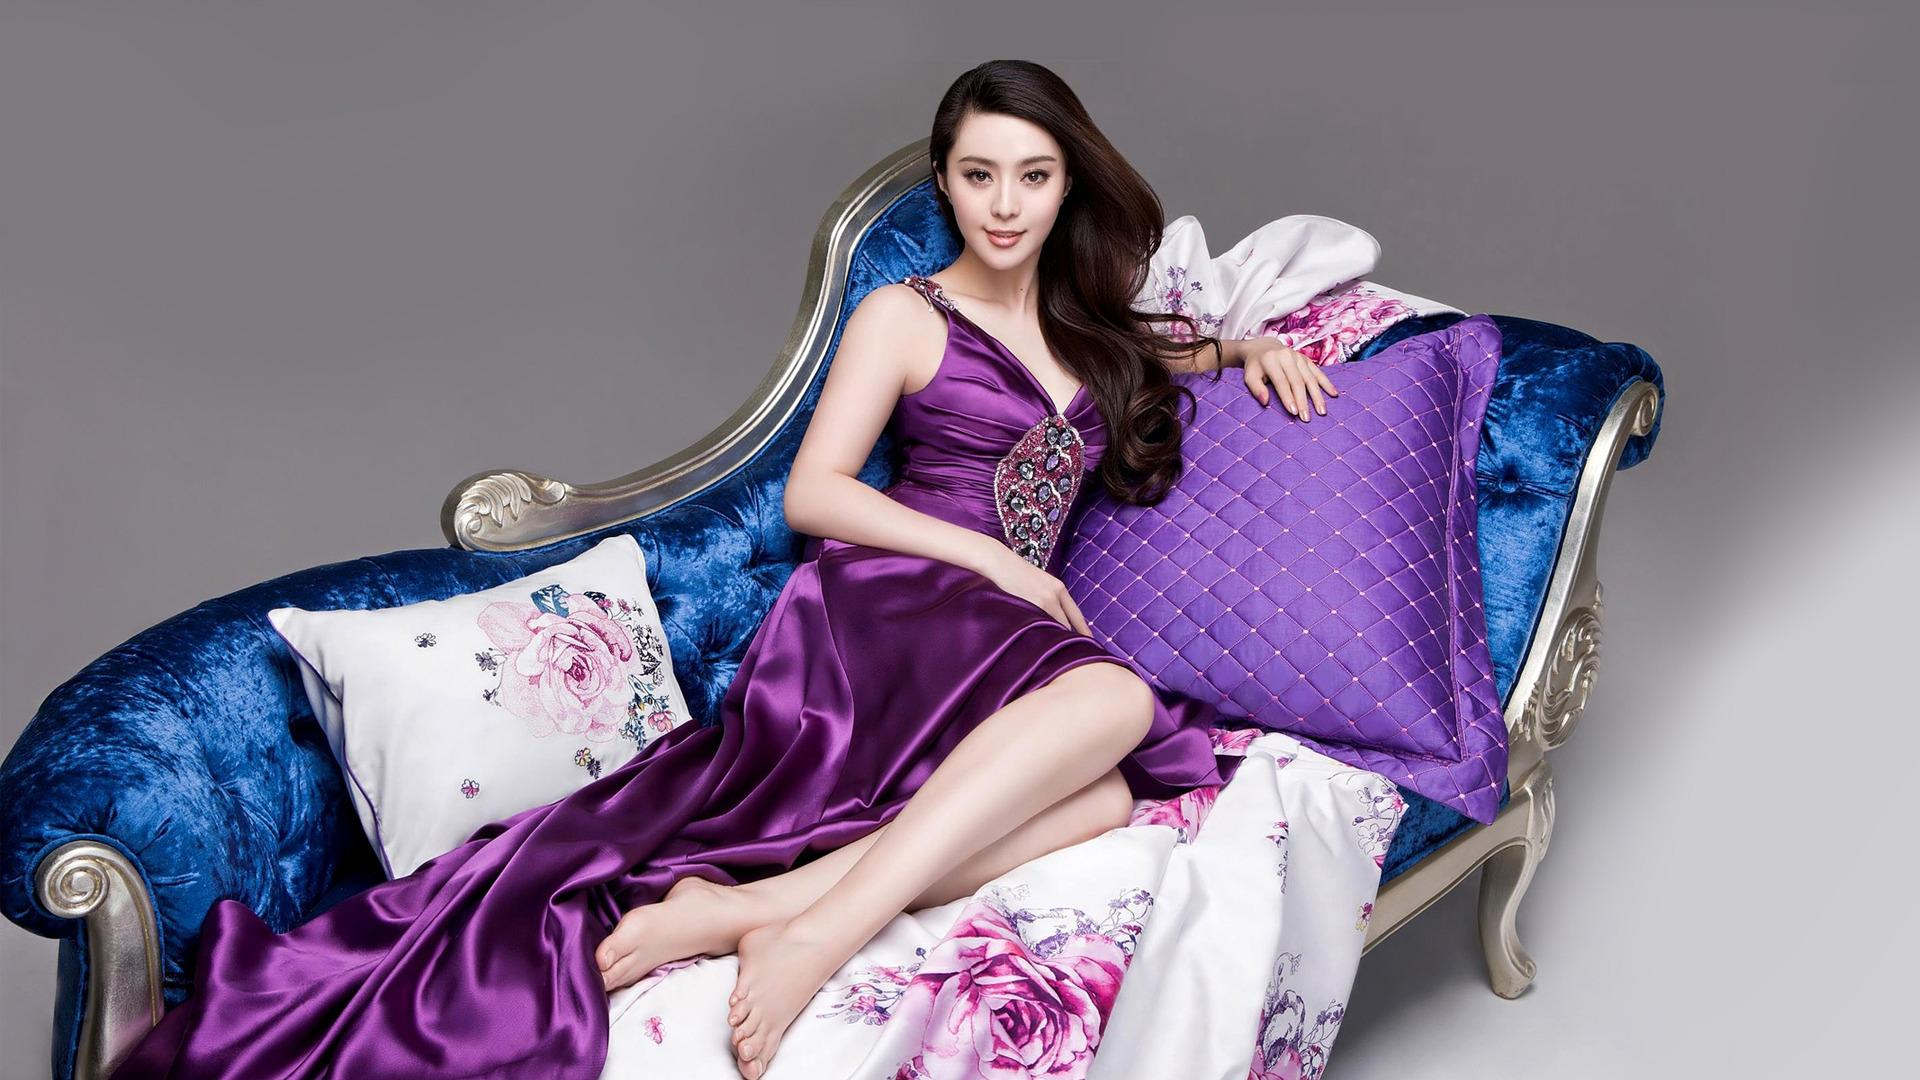 Fan Bing Bing feet